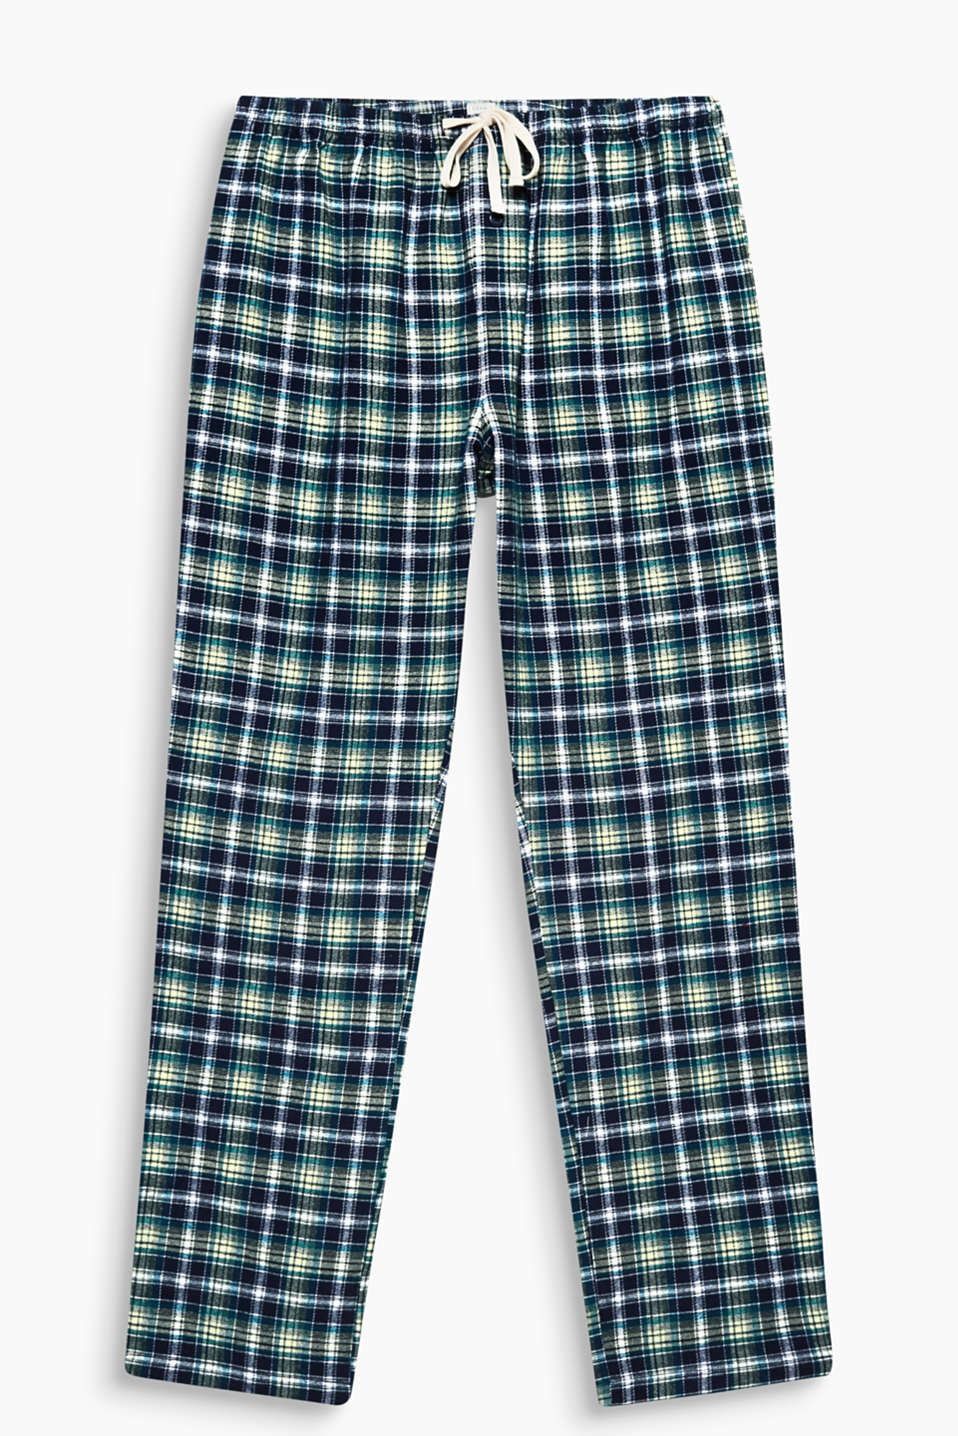 These pyjama bottoms in cotton flannel are super snug and toasty on cold winter nights!